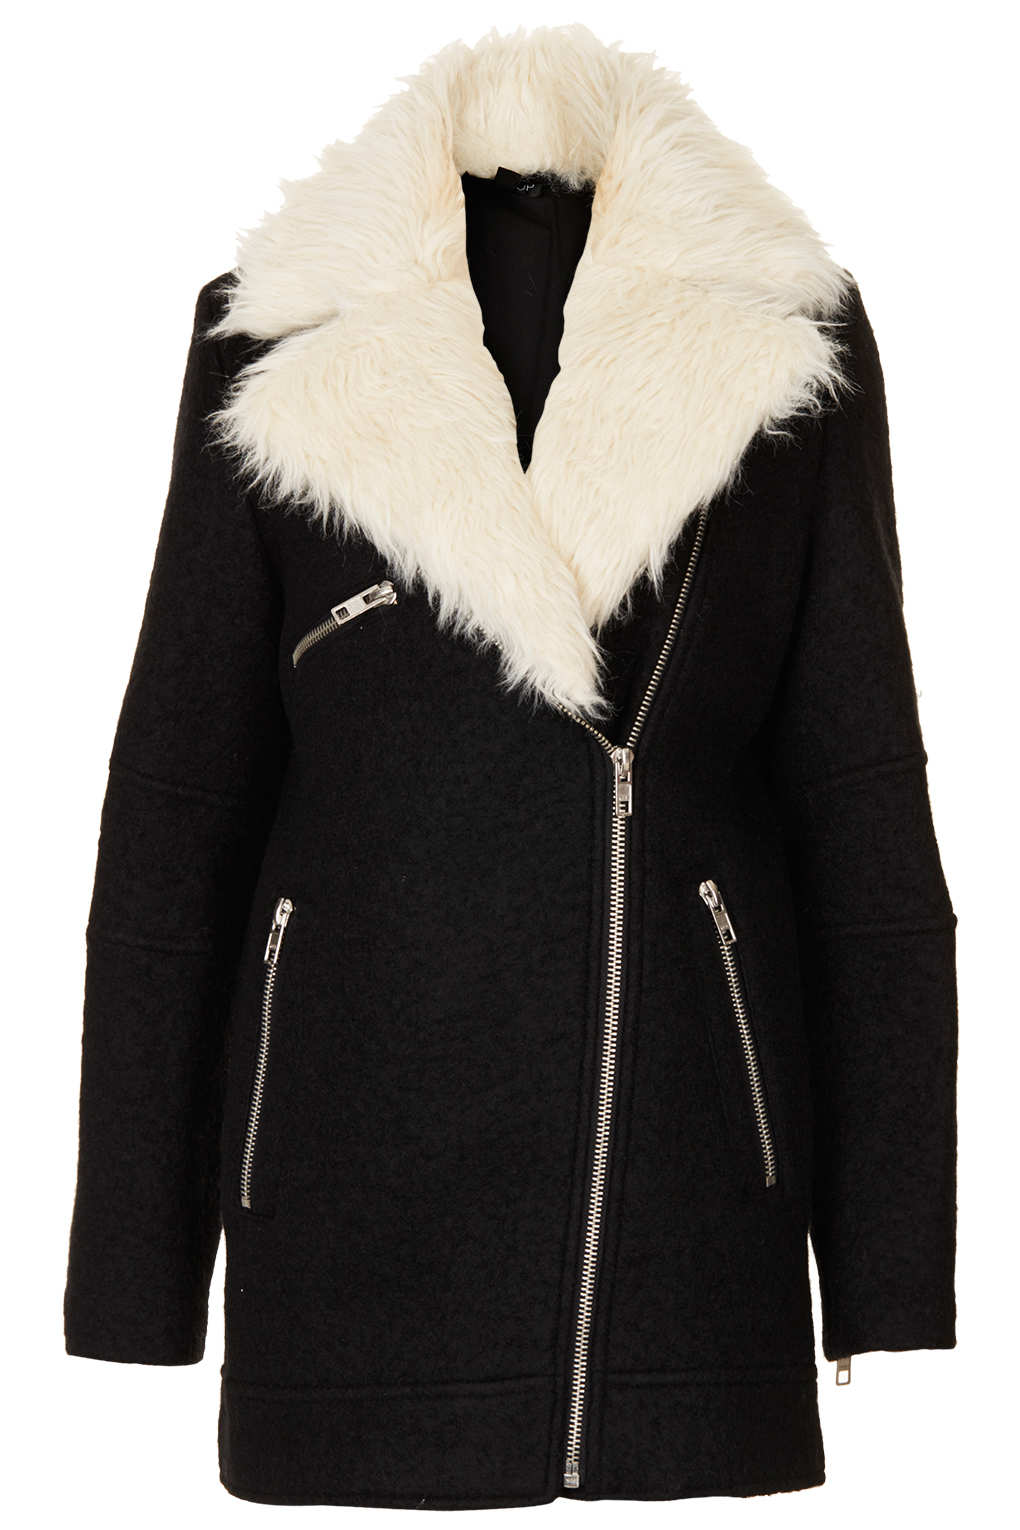 Topshop Fur Collar Textured Biker Jacket in Black | Lyst